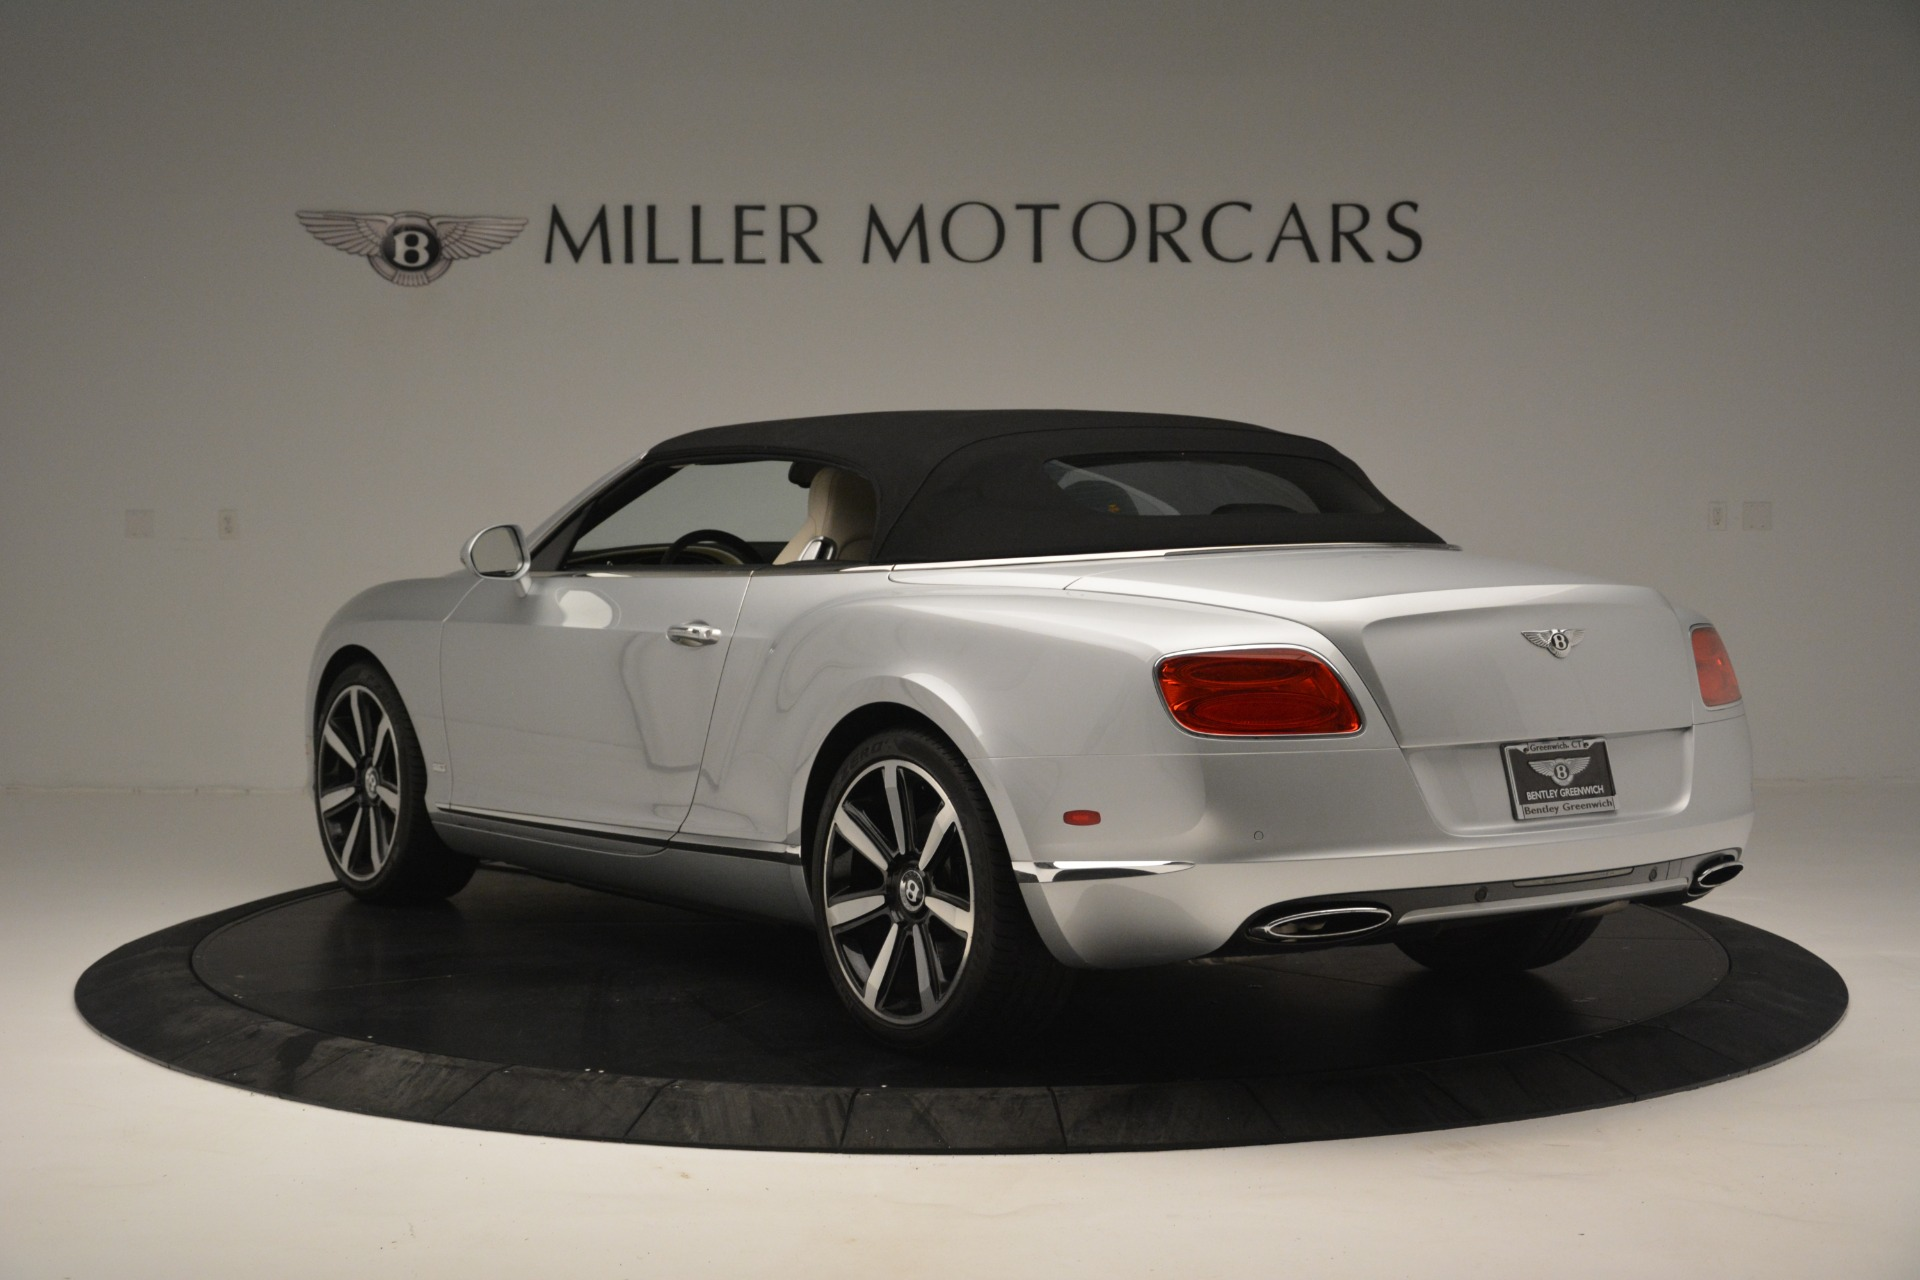 Used 2013 Bentley Continental GT W12 Le Mans Edition For Sale In Greenwich, CT 2519_p12